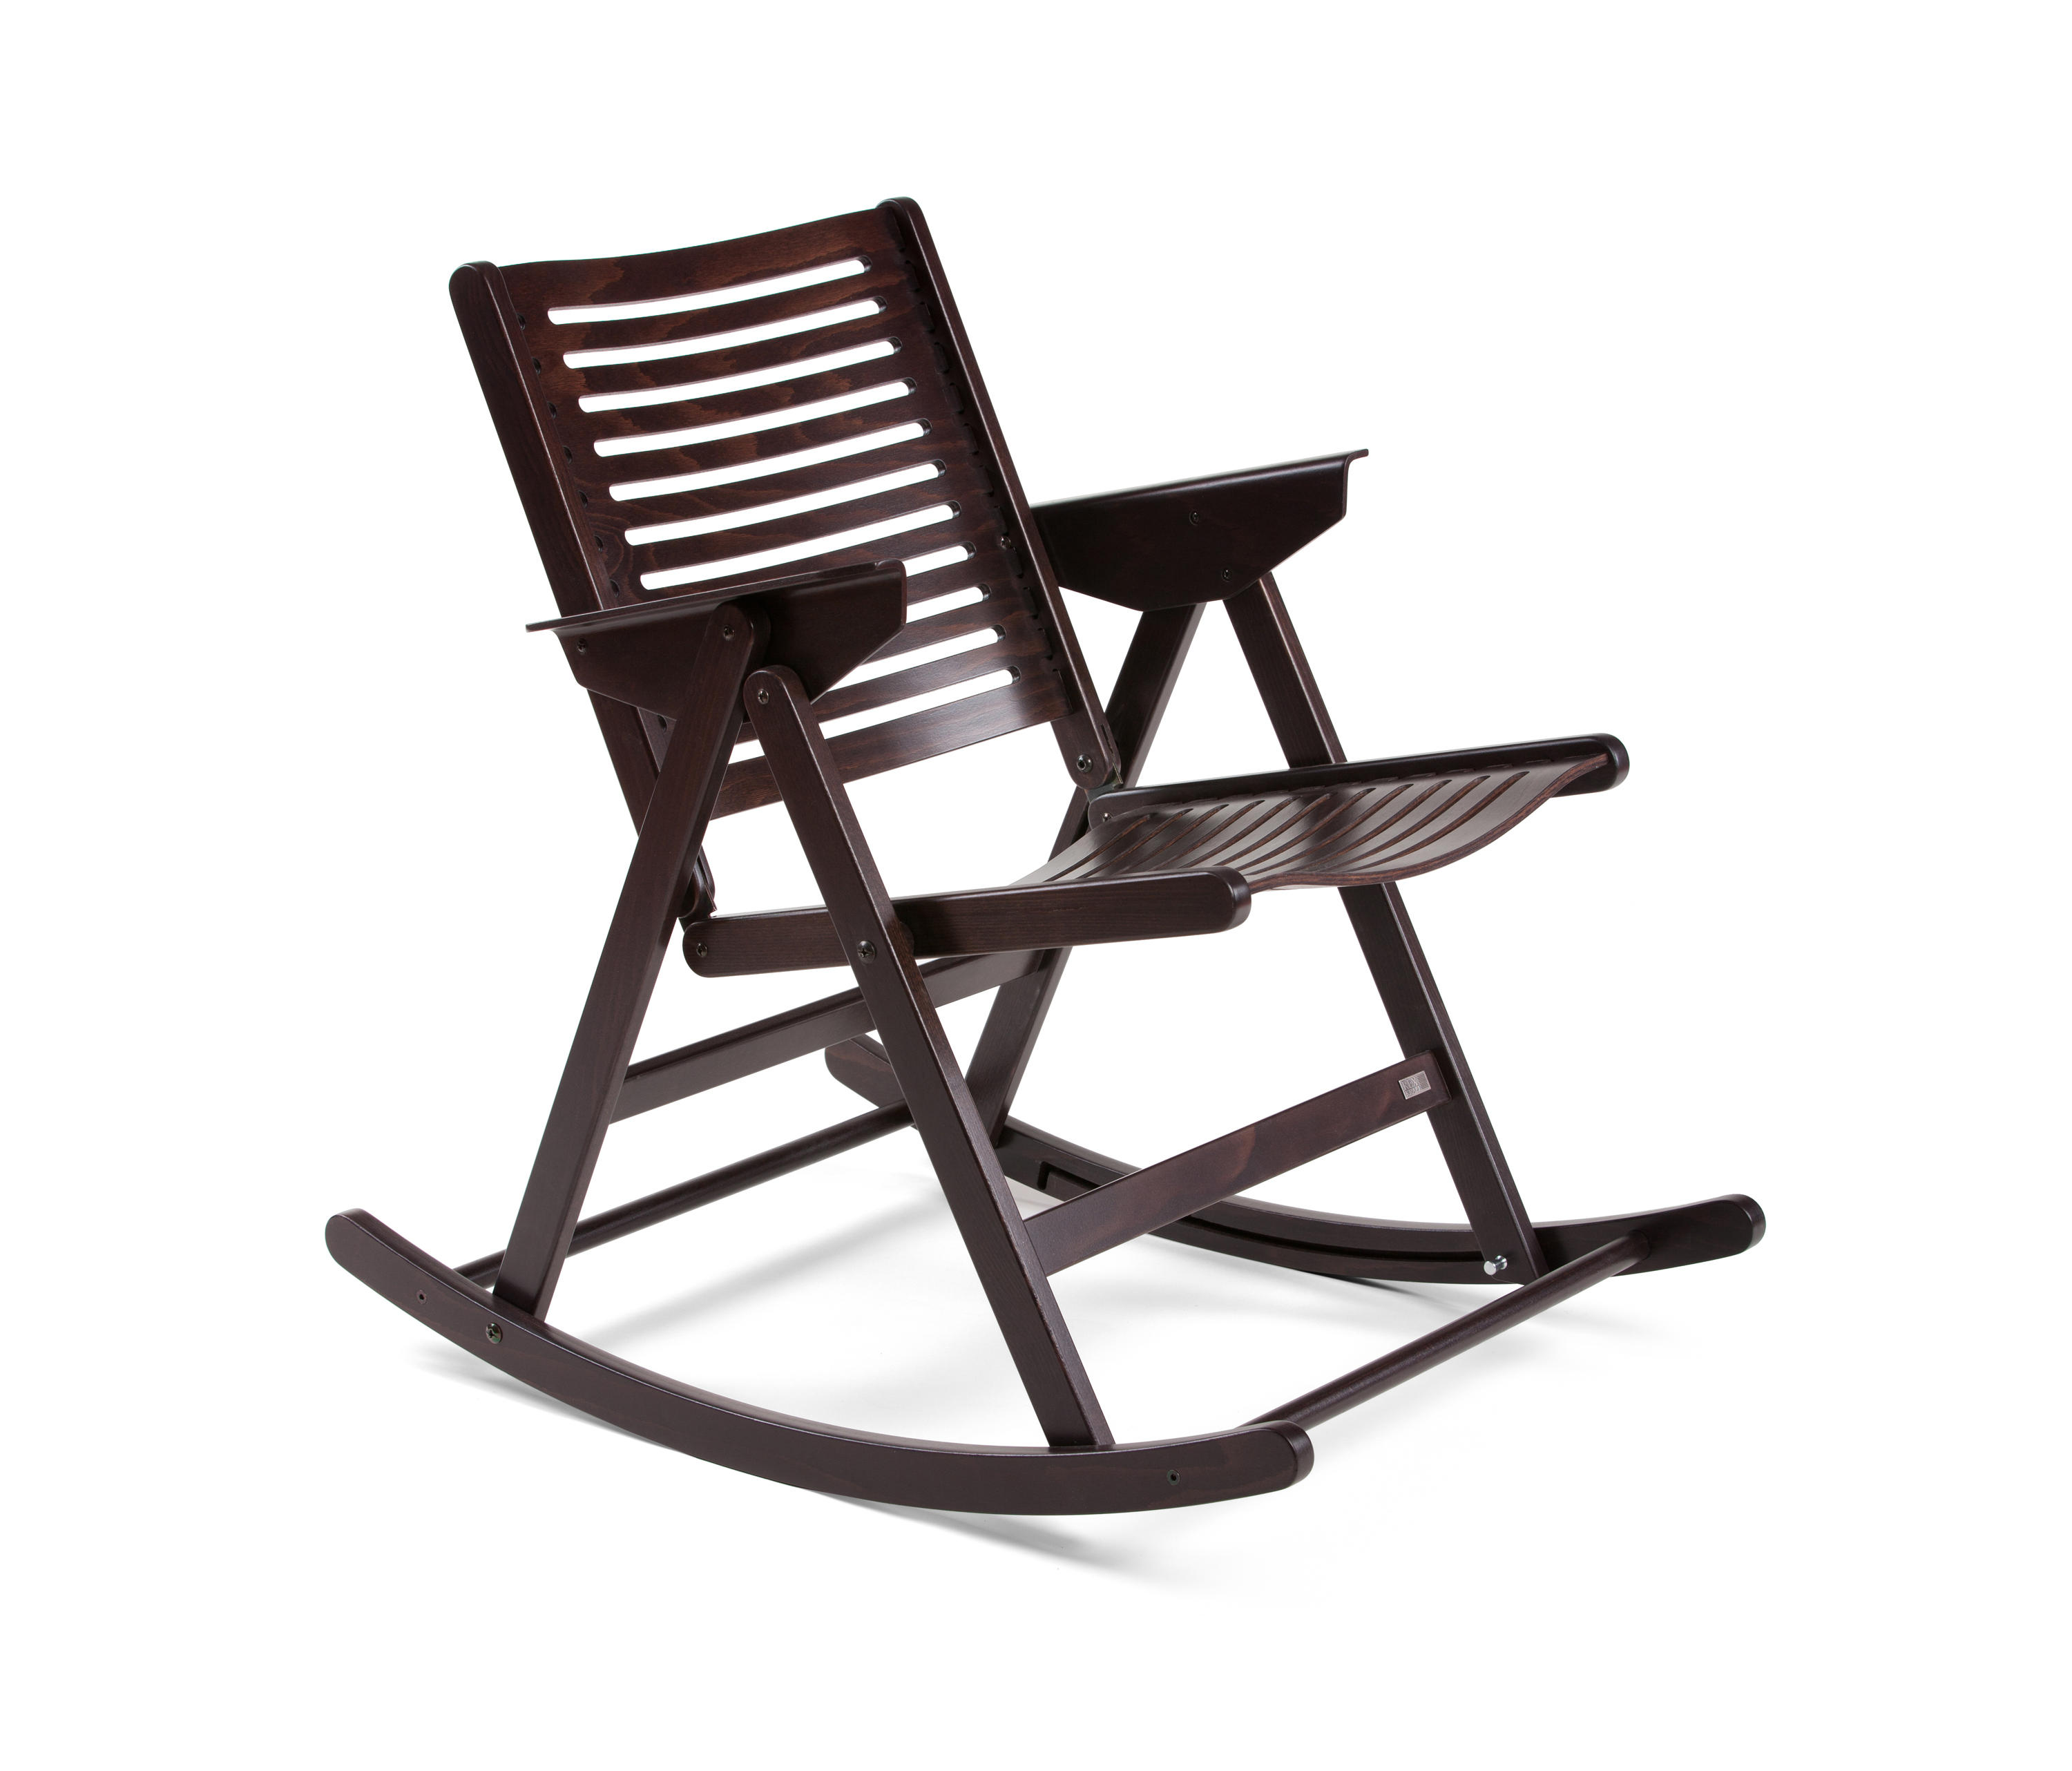 REX ROCKING CHAIR DARK BROWN Garden chairs from Rex Kralj